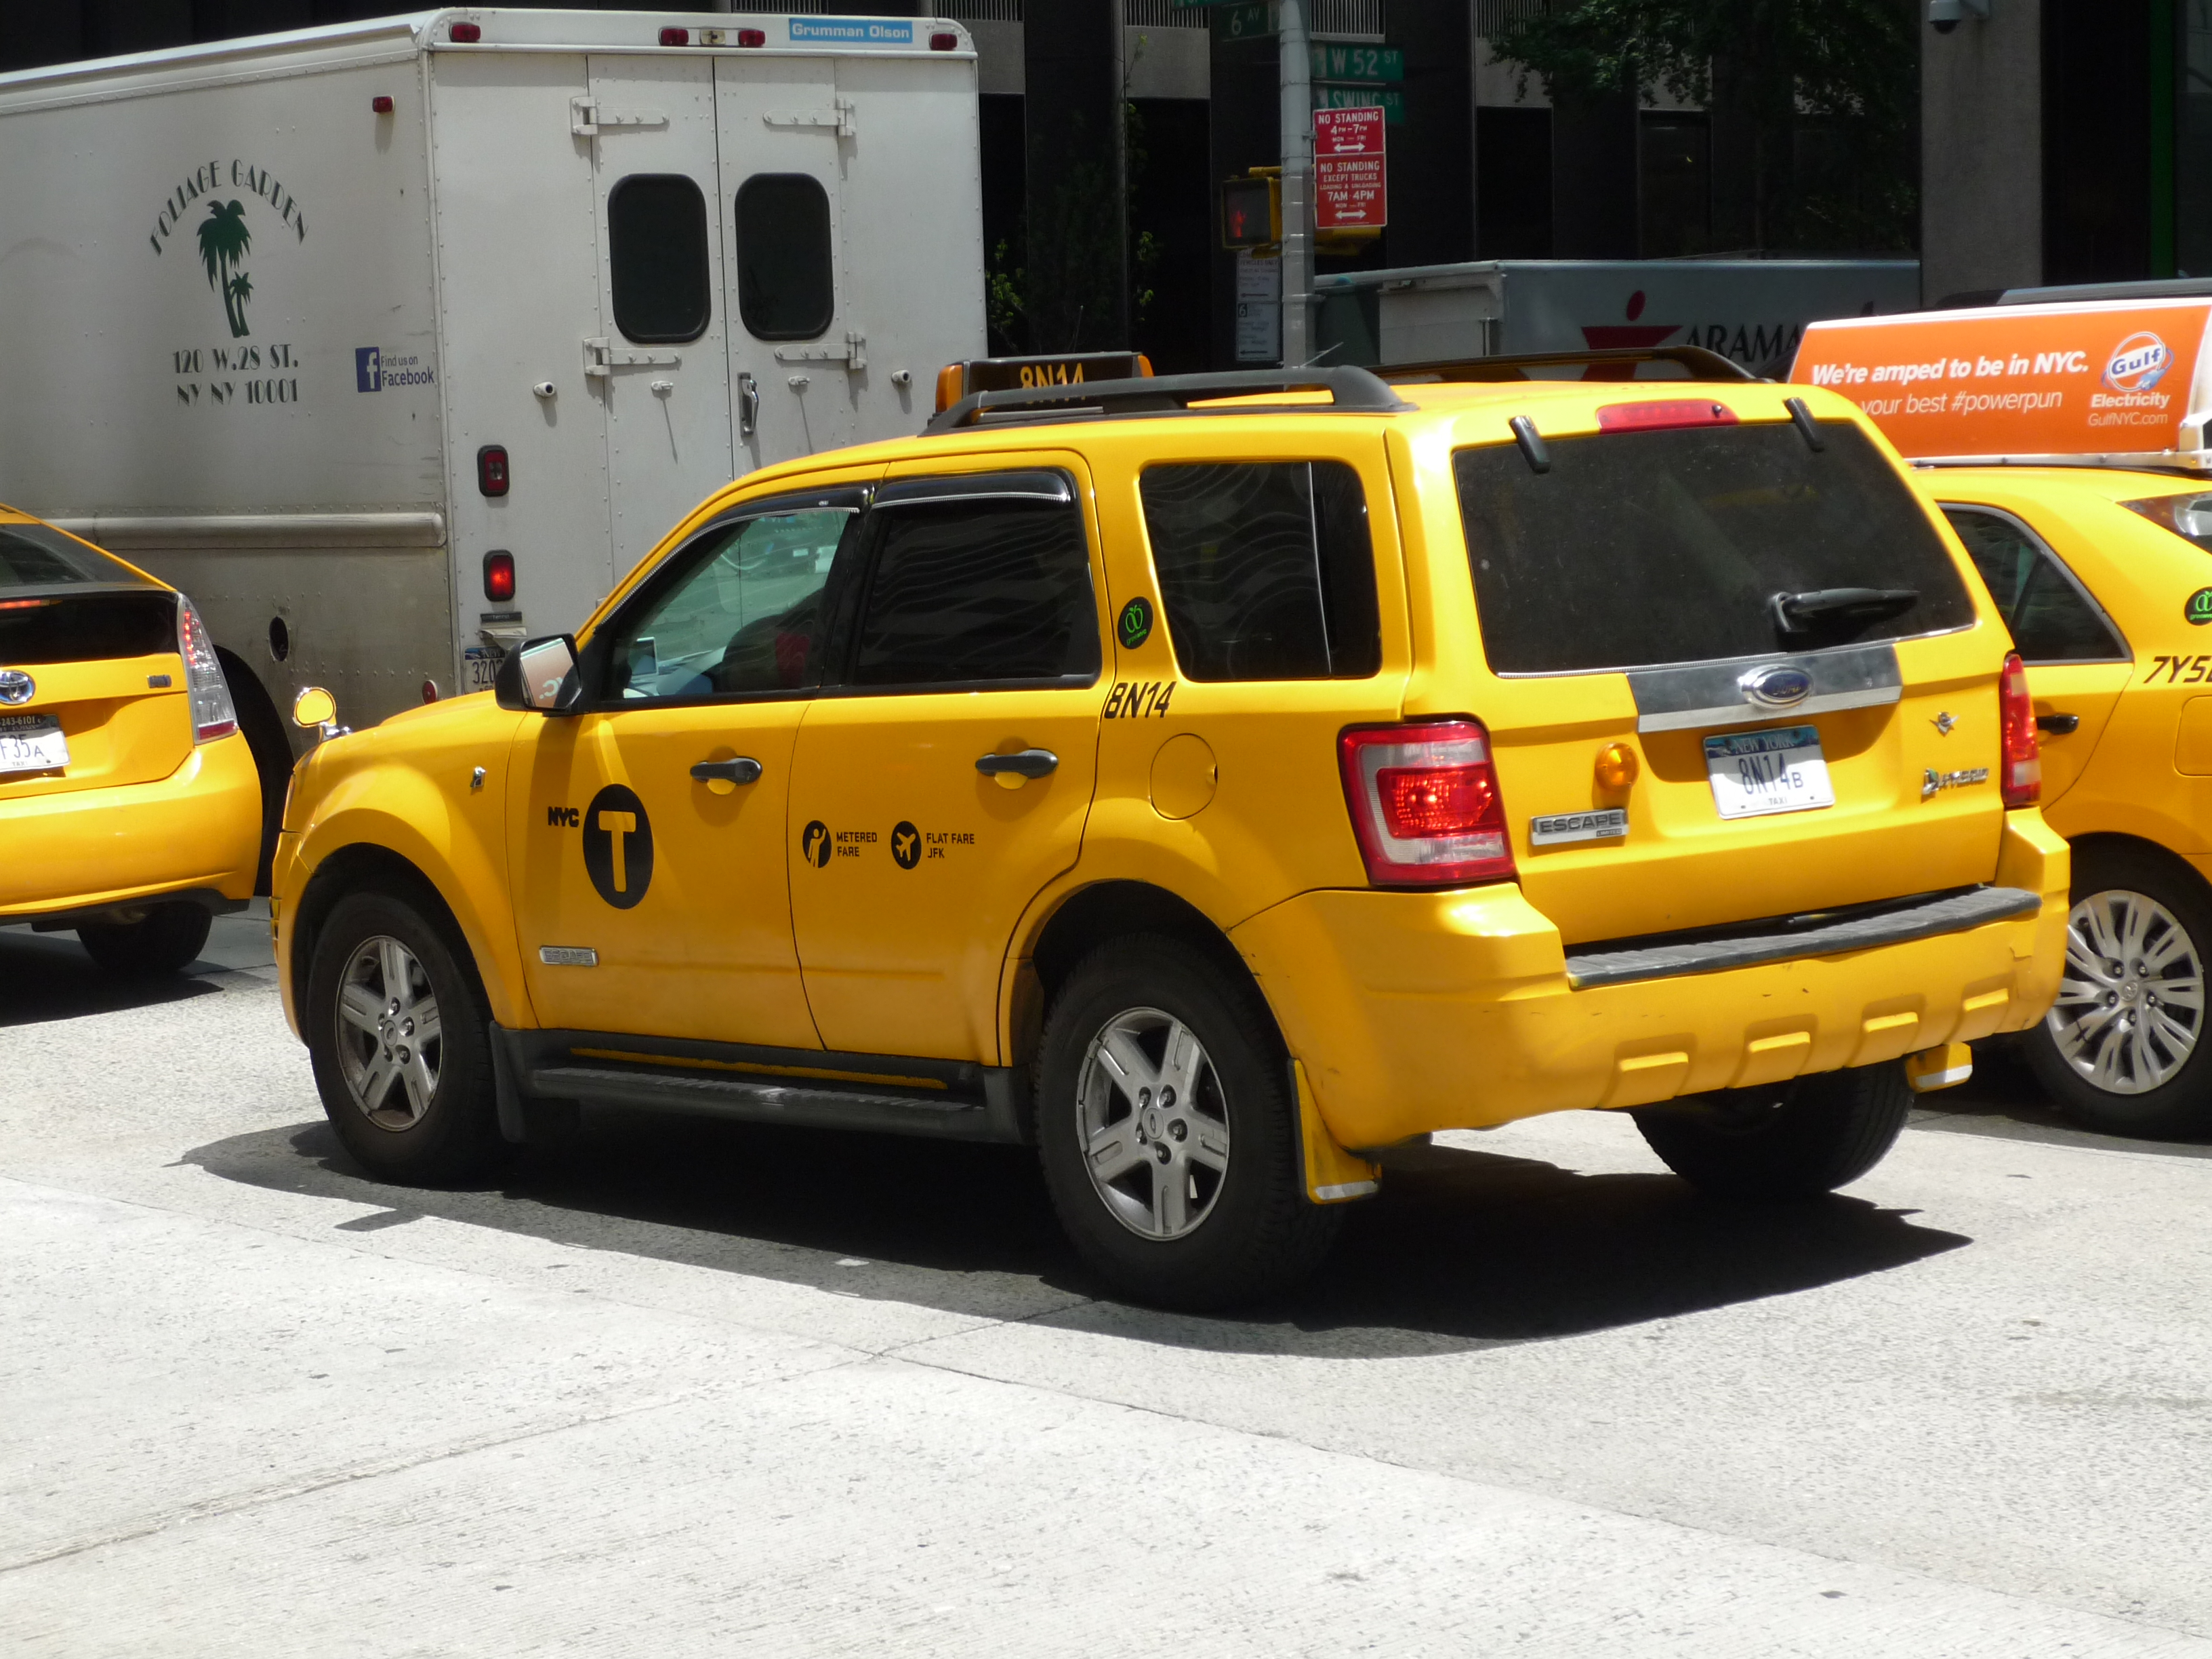 file ford escape nyc taxi 14380190530 jpg wikimedia commons. Black Bedroom Furniture Sets. Home Design Ideas